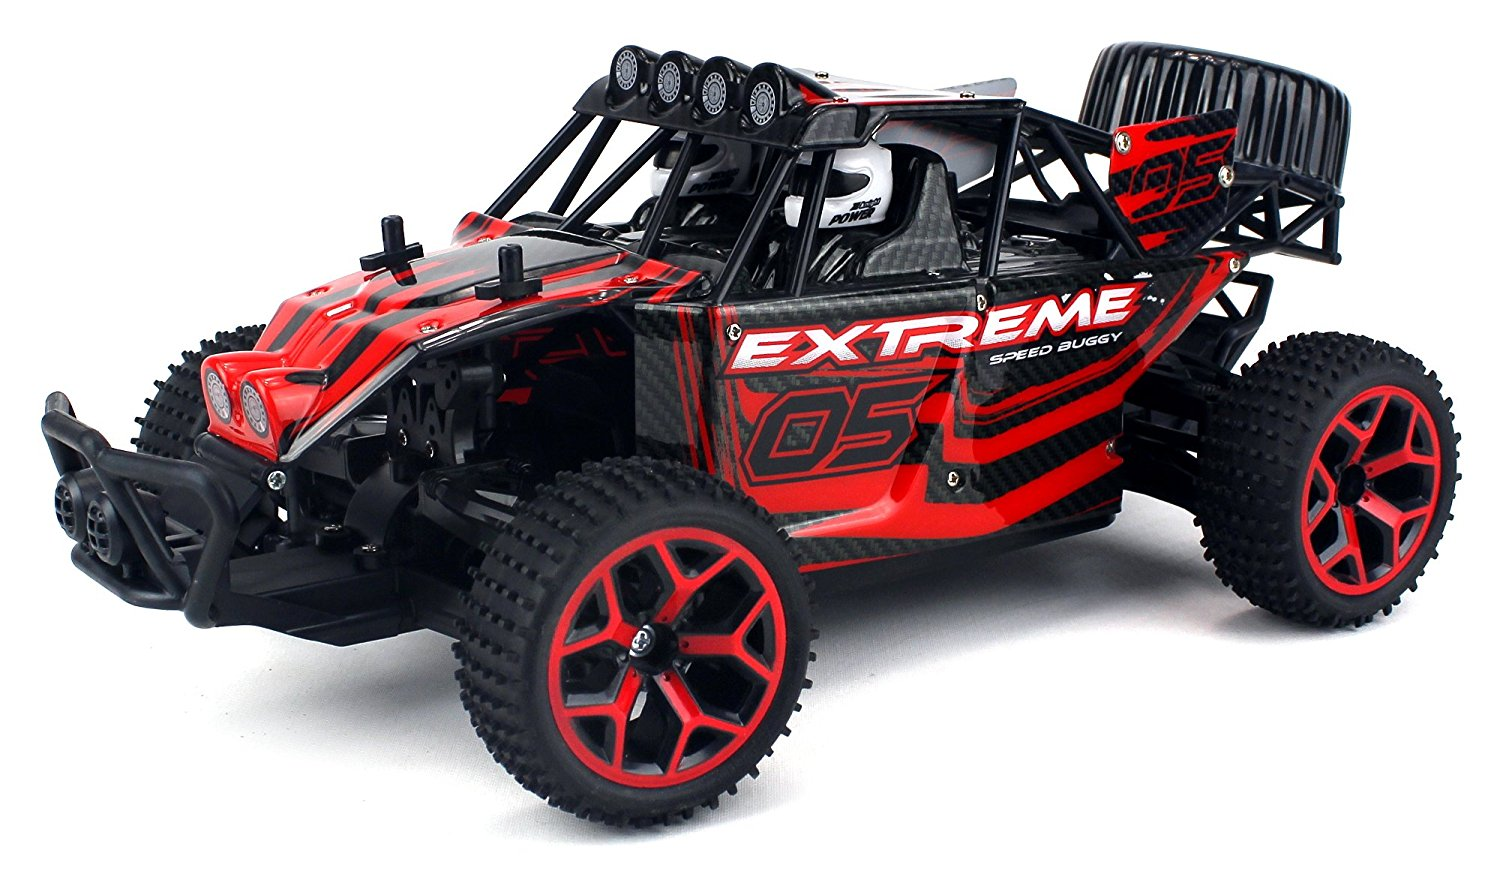 Extreme Speed Remote Control RC Truggy Truck Buggy 1:18 Scale 4 Wheel Drive 4WD... by Velocity Toys